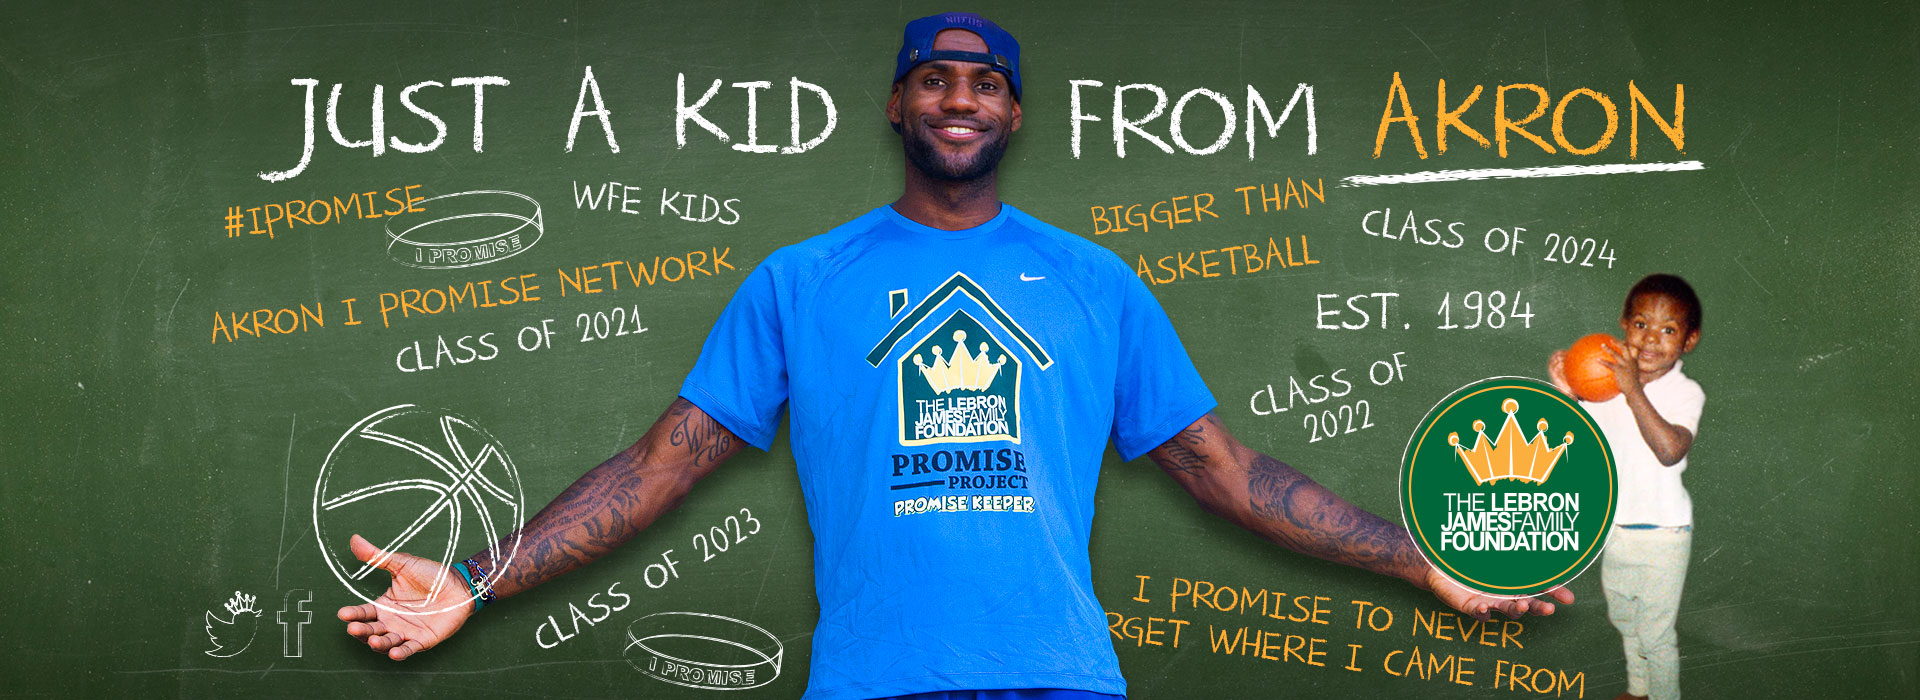 Special Post: Thank You LeBron